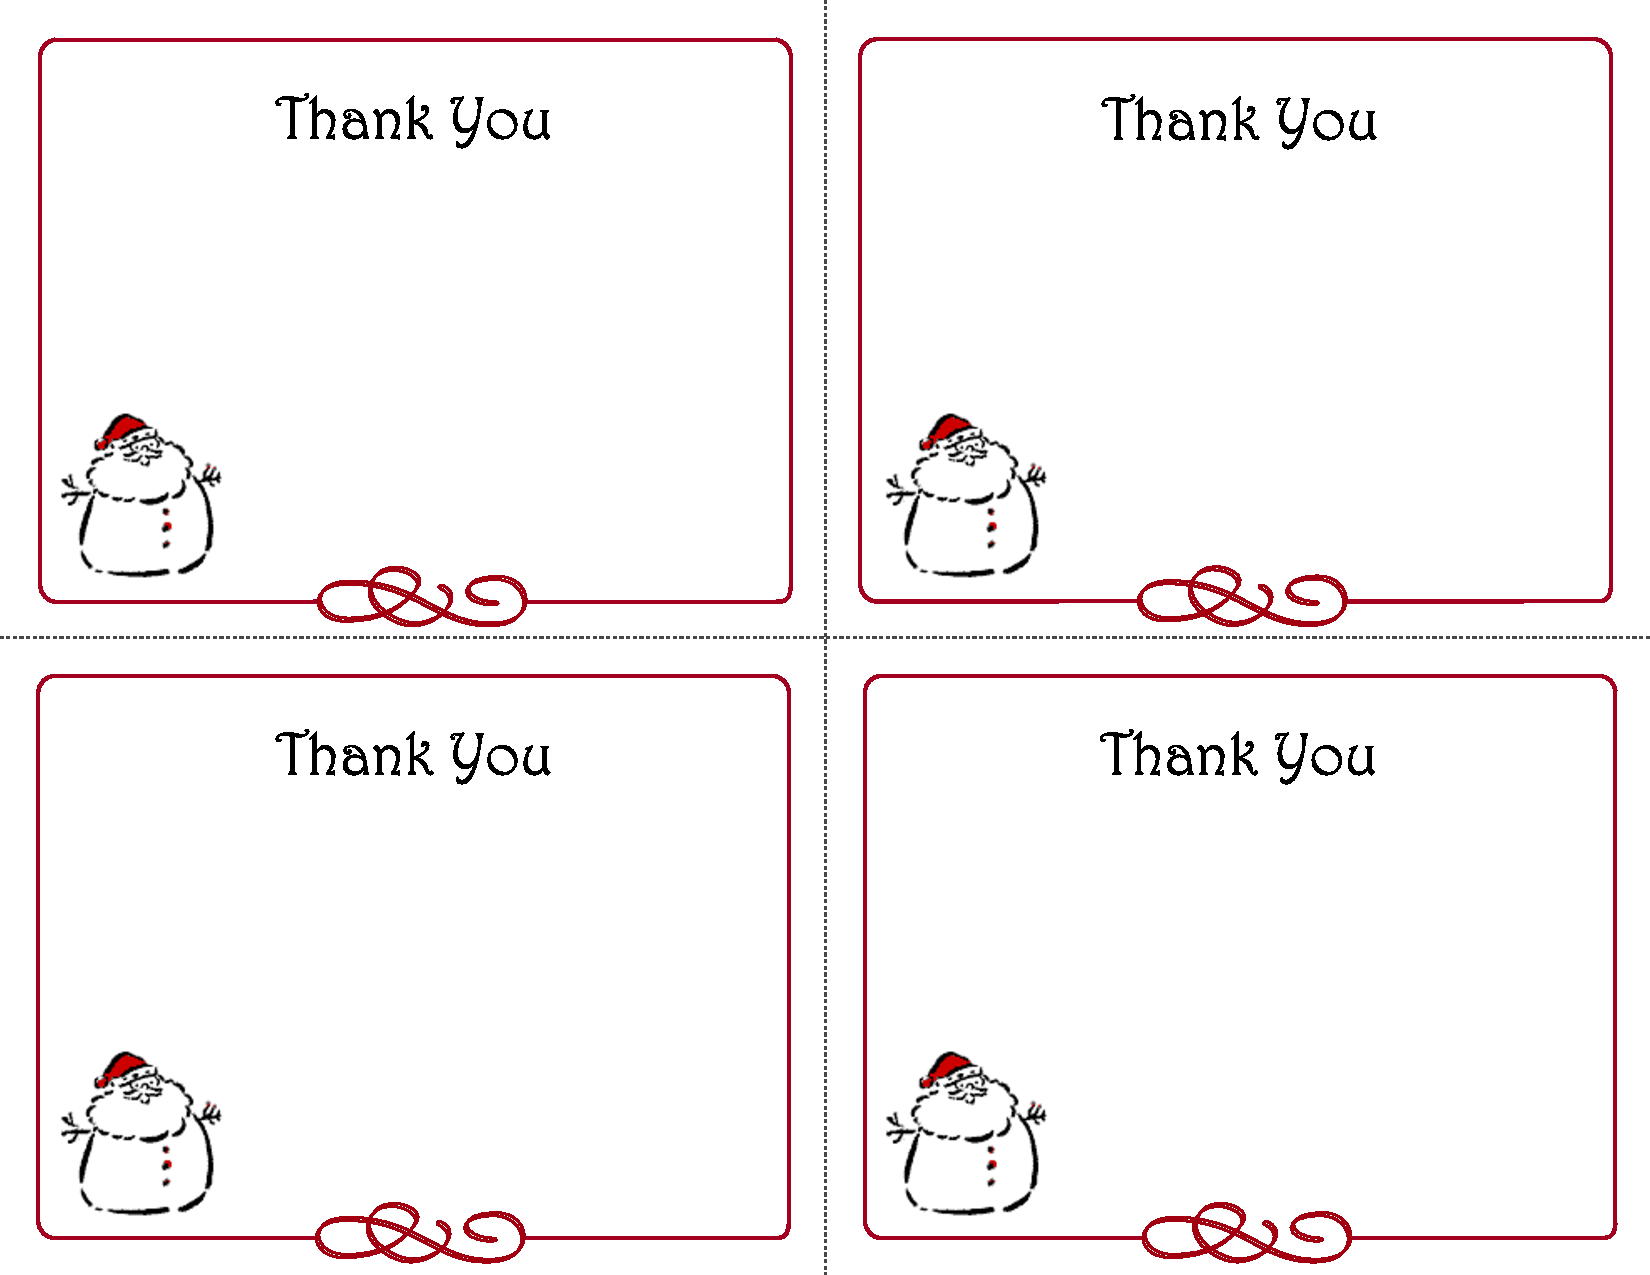 Free Thank You Cards Printable   Free Printable Holiday Gift Intended For Template For Cards To Print Free